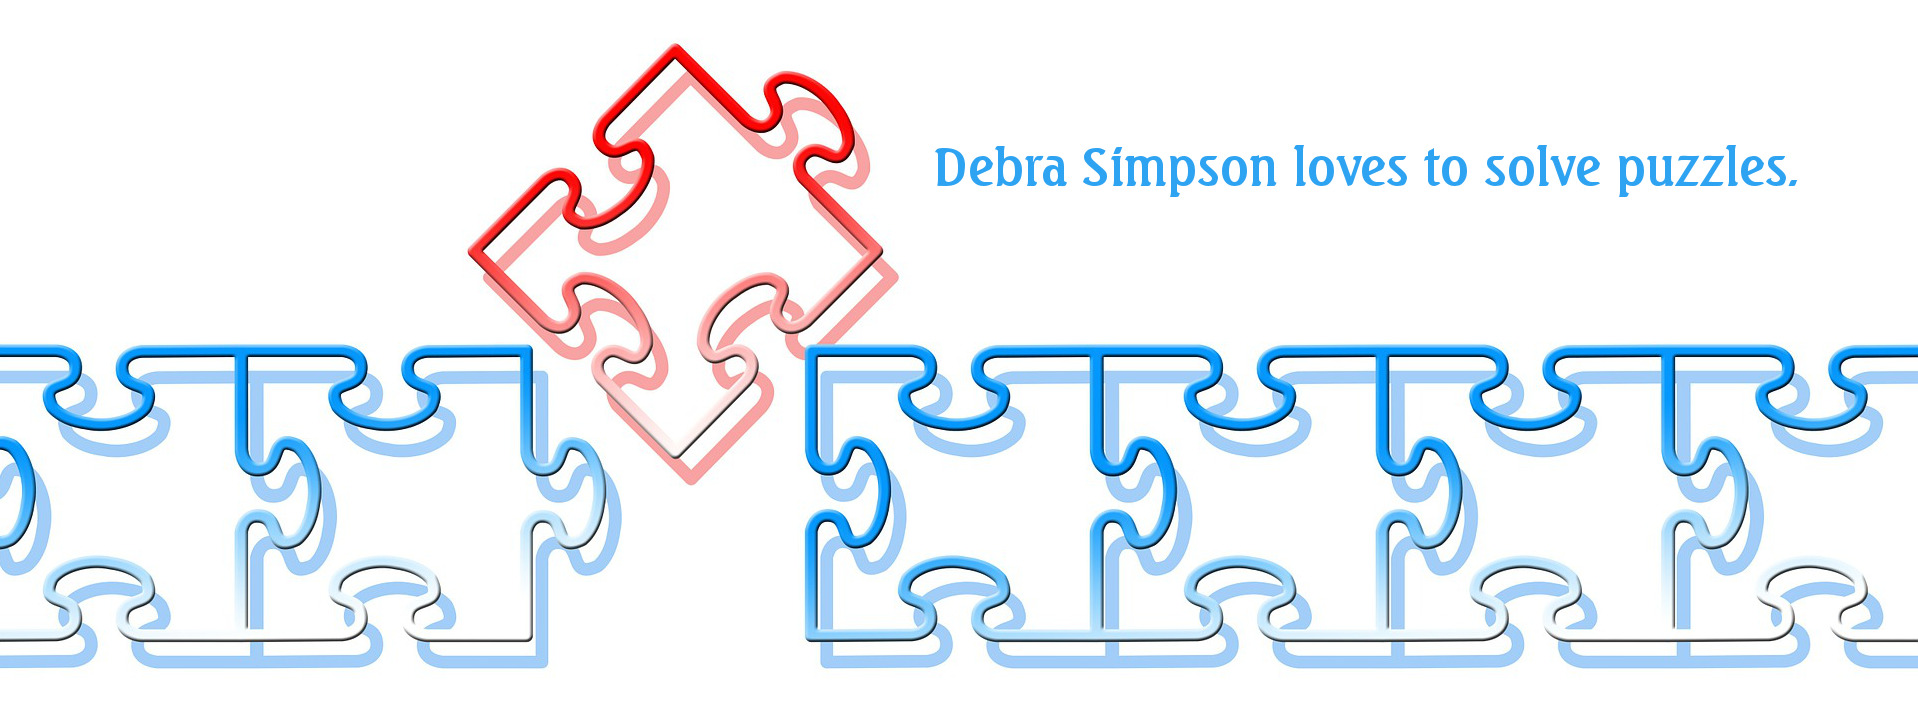 Debra Simpson solves problems